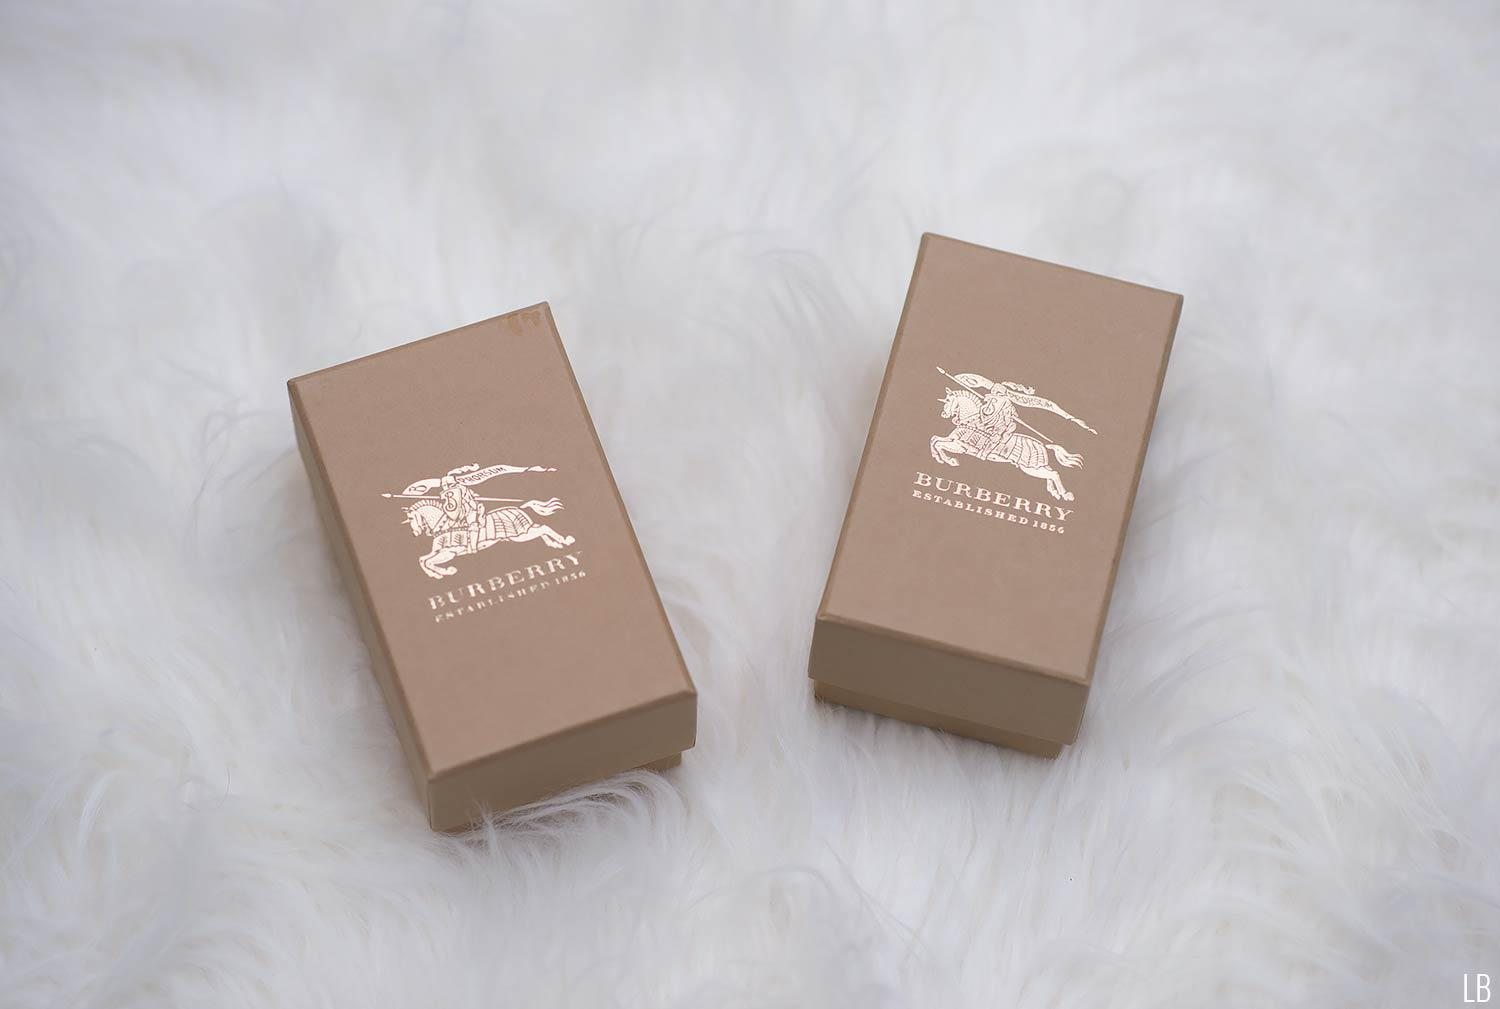 burberry-bears-boxes